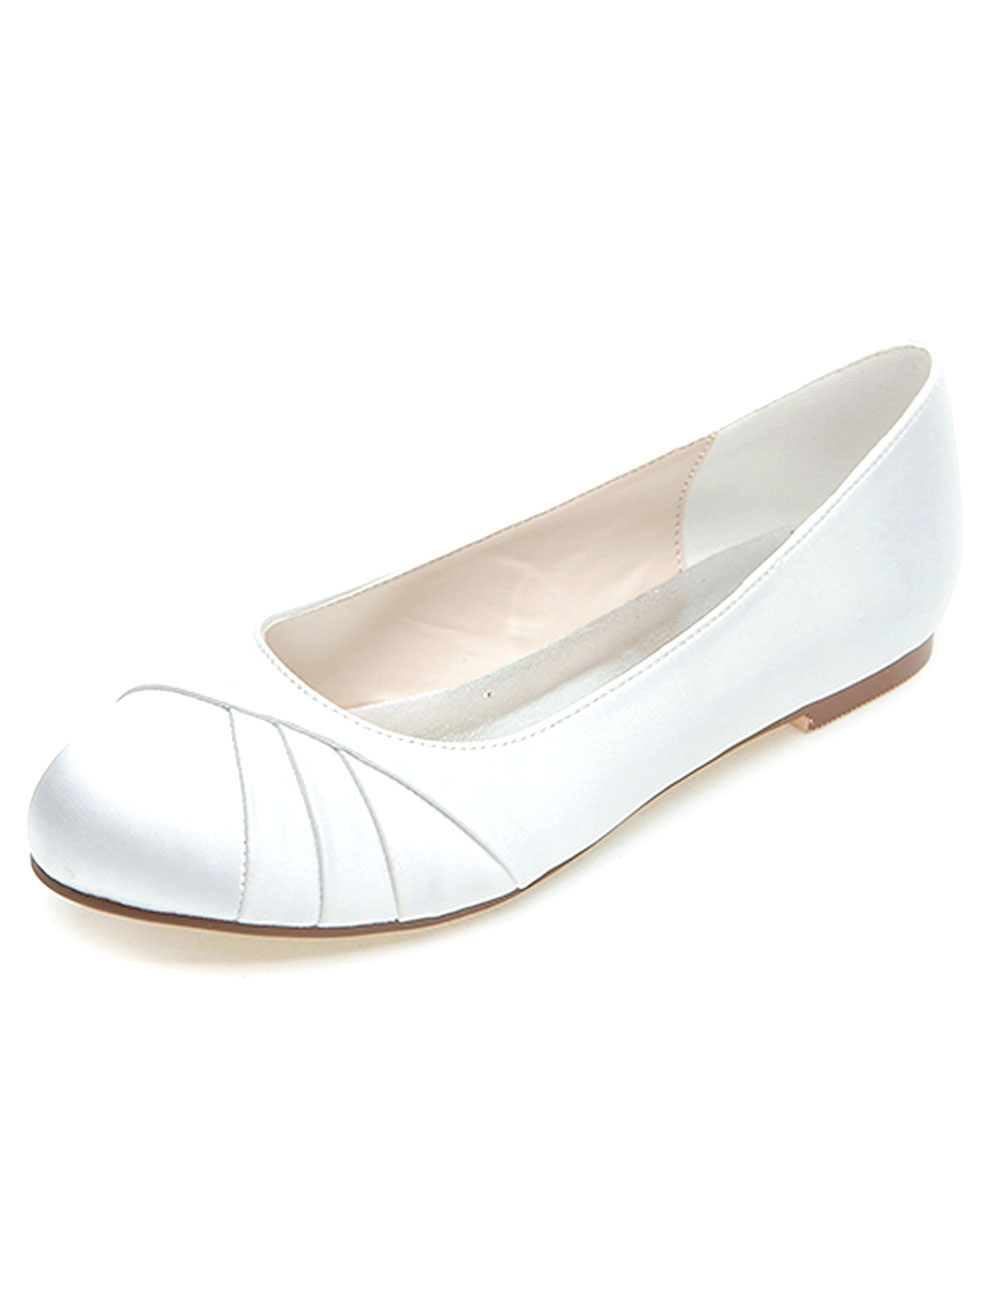 White Wedding Shoes Satin Mother Of The Bride Shoes Round Toe Slip On Bridal Shoes